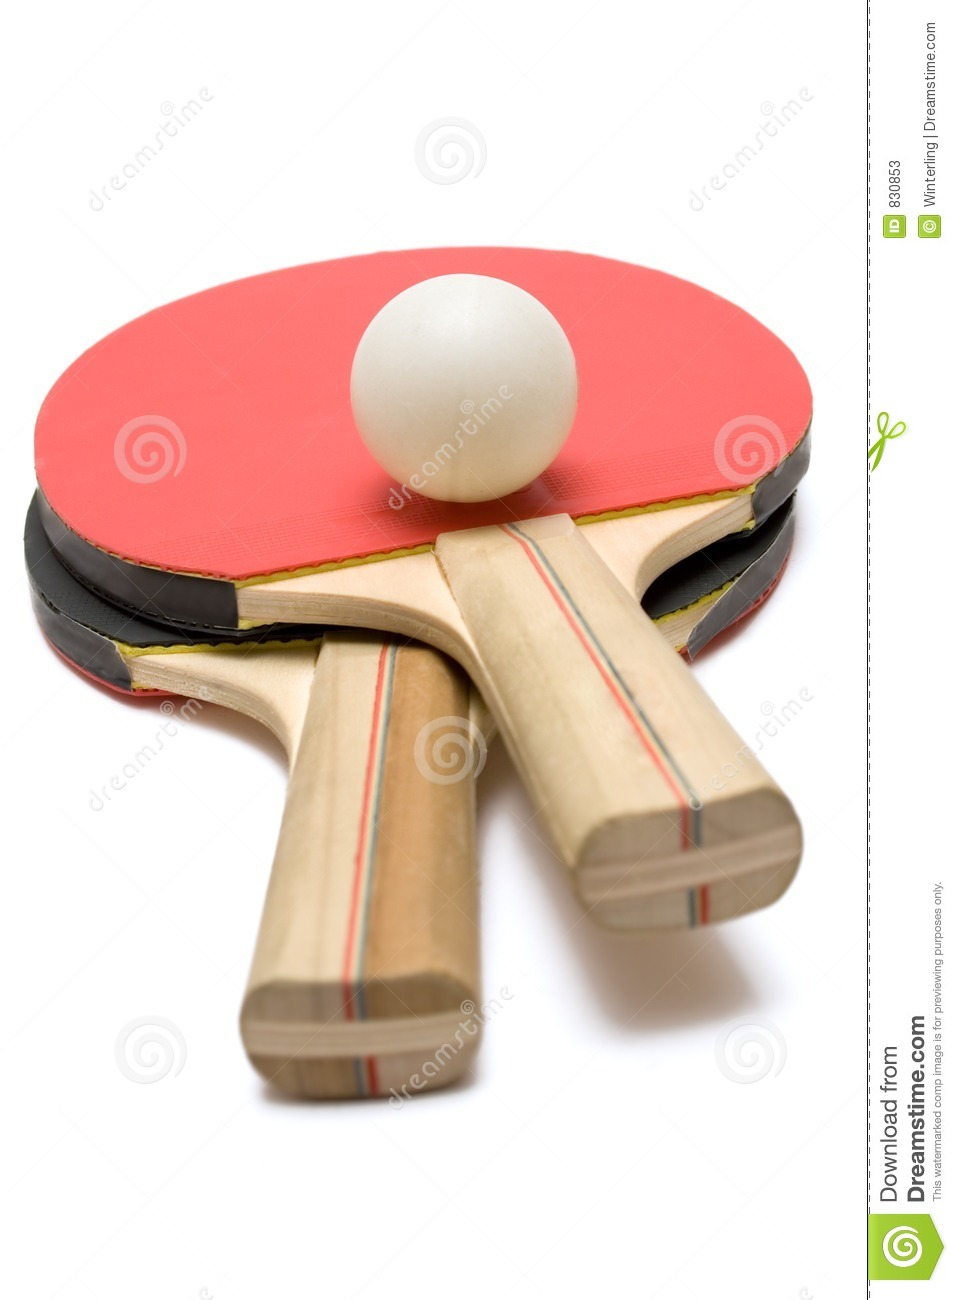 32775769429 likewise Ping Pong Paddle 3d Model in addition Table Tennis Cartoon also Triban 100 Road Bike Id 8377732 in addition Activity Phantom. on paddle racket